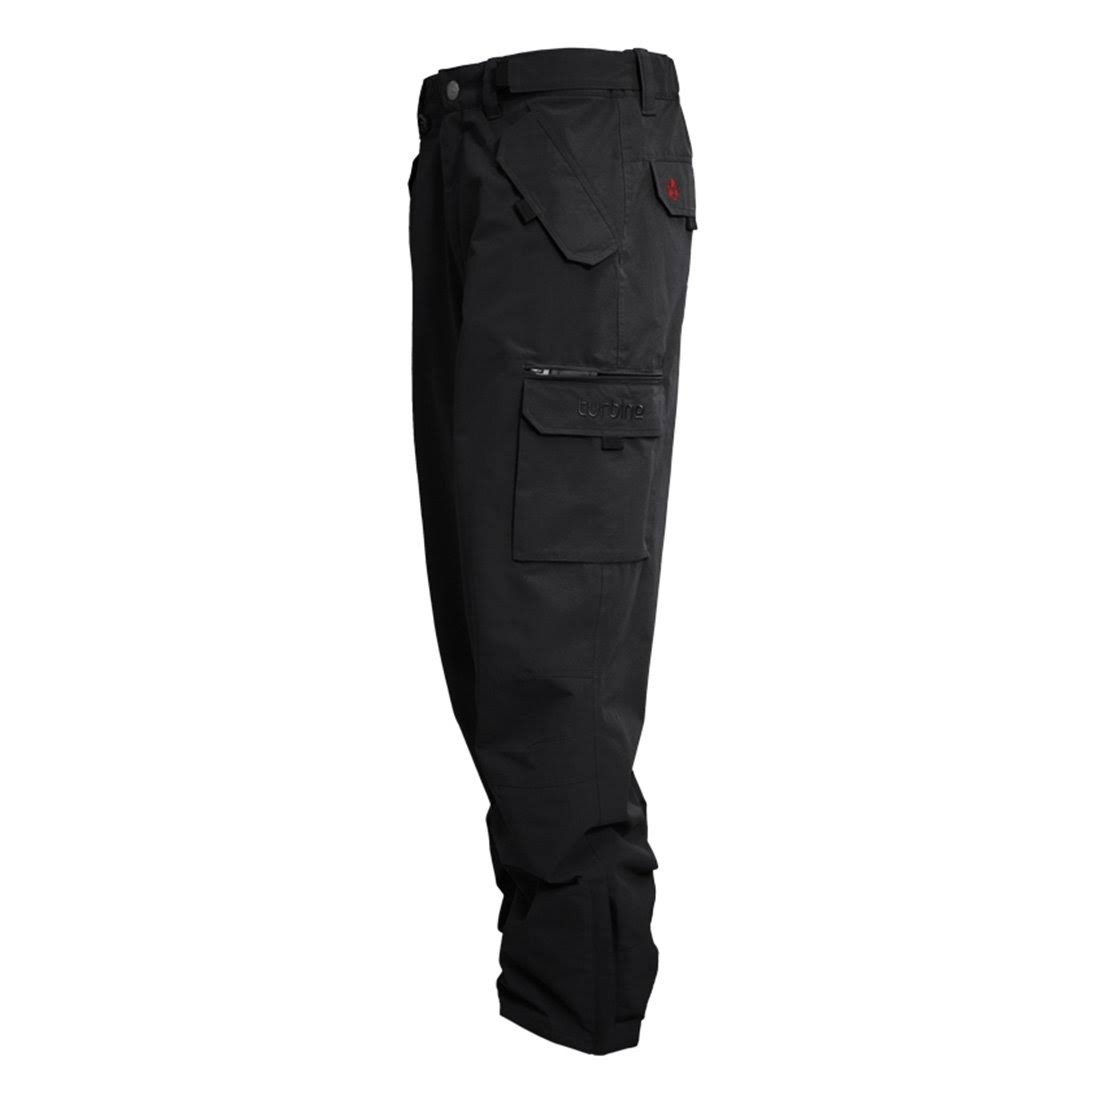 Turbine FDGB Pants - Men's 2XL Black